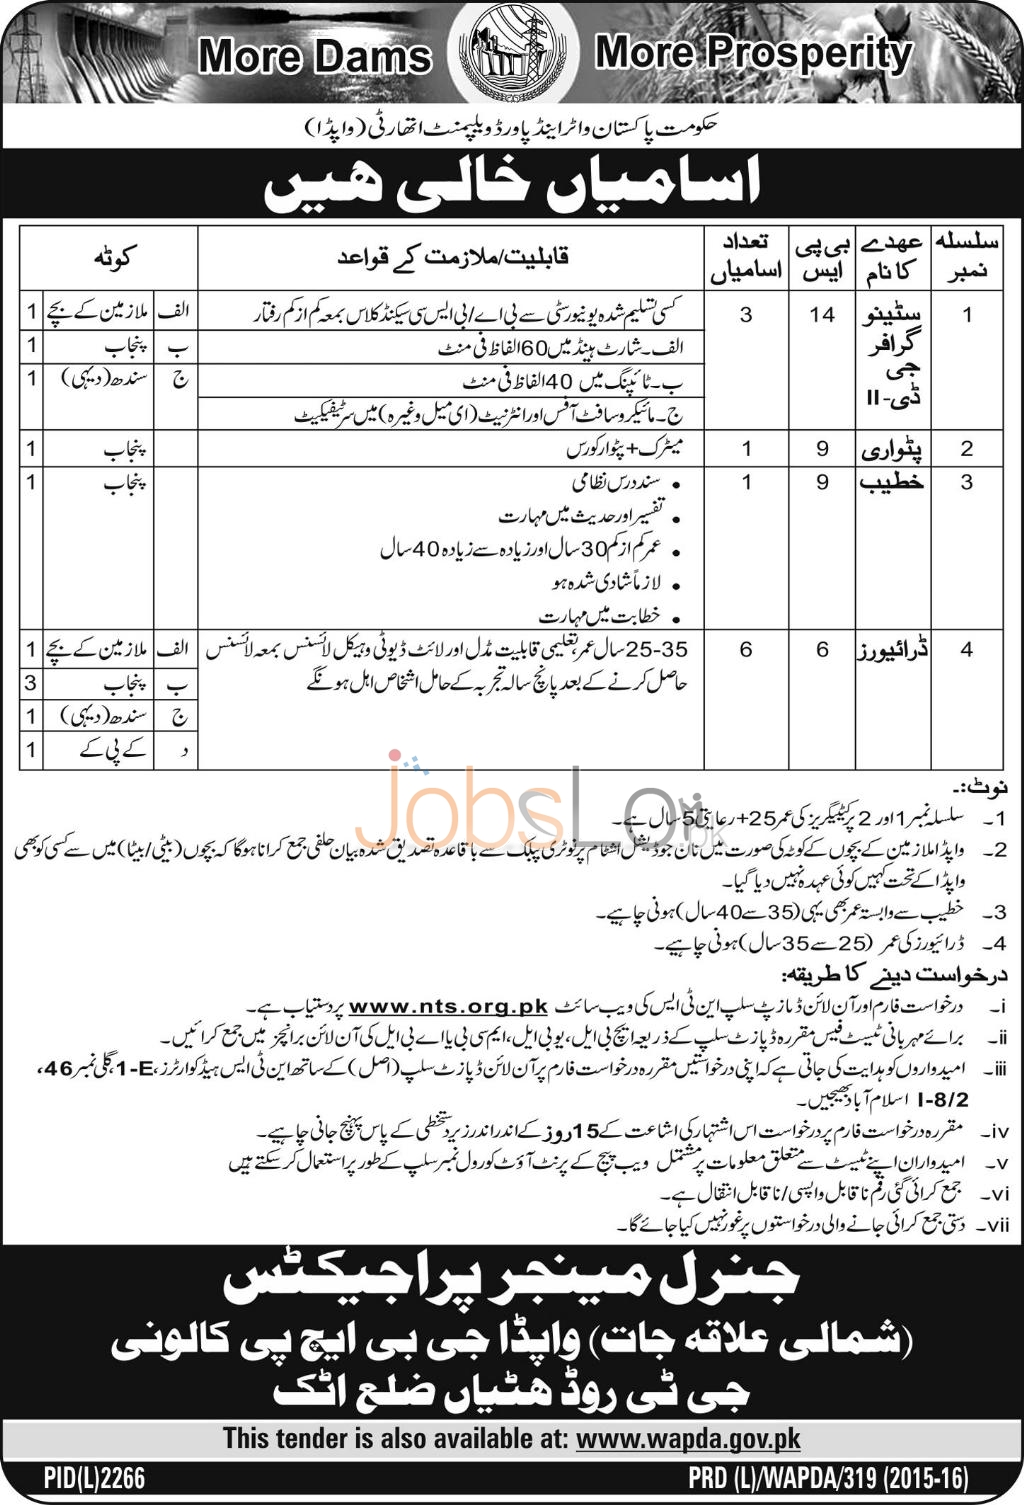 WAPDA Jobs in Sindh and Punjab 24th January 2016